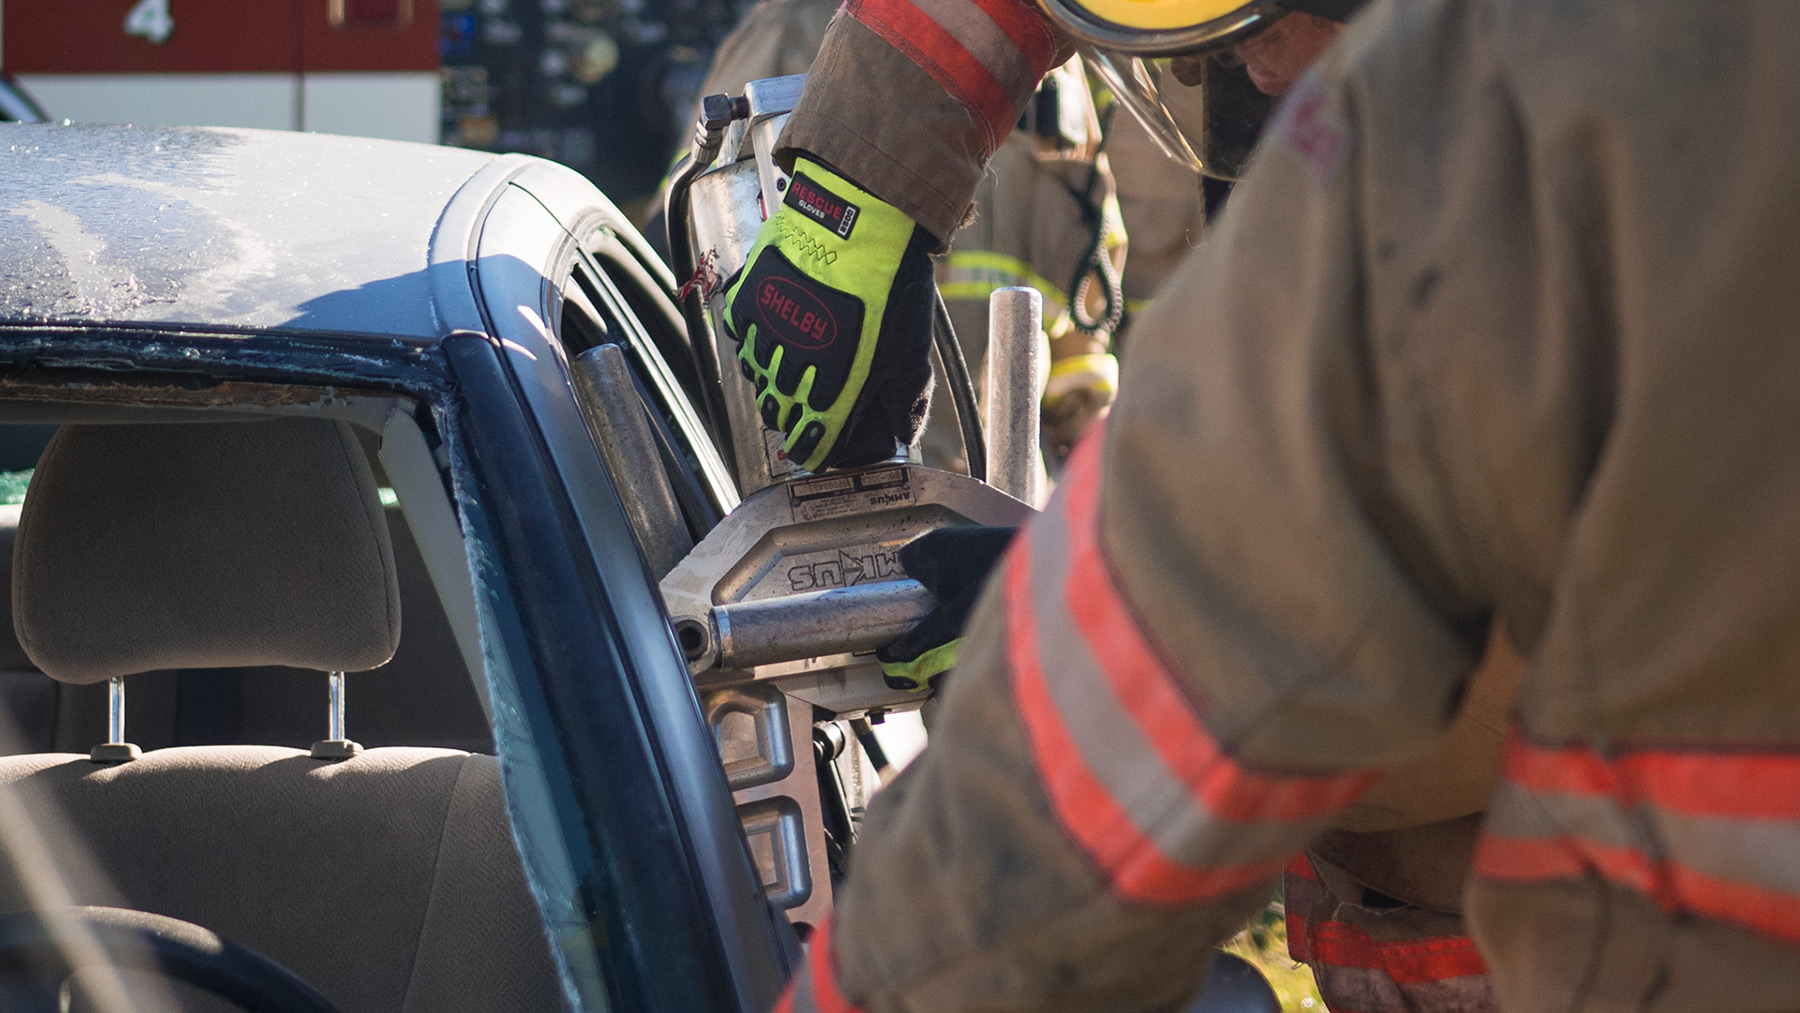 Kim Clark used jaws of life to remove door from car during extraction training exercise